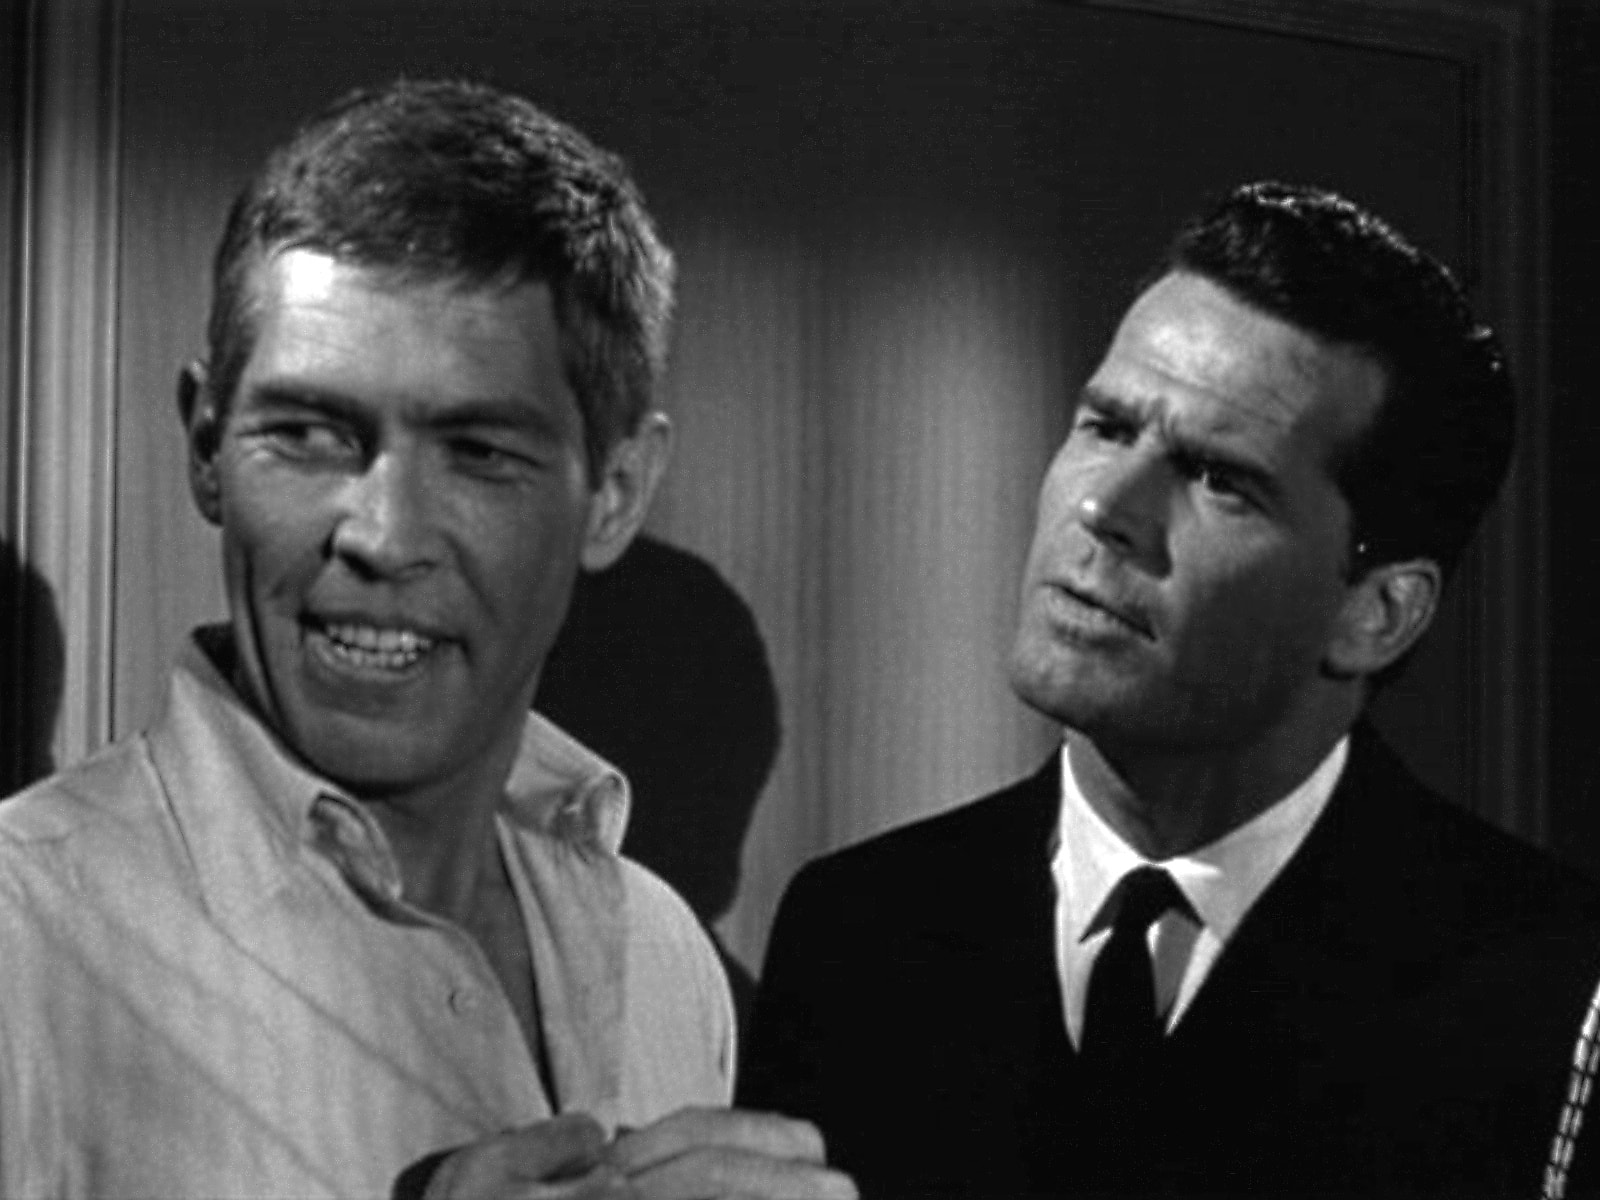 James Coburn High